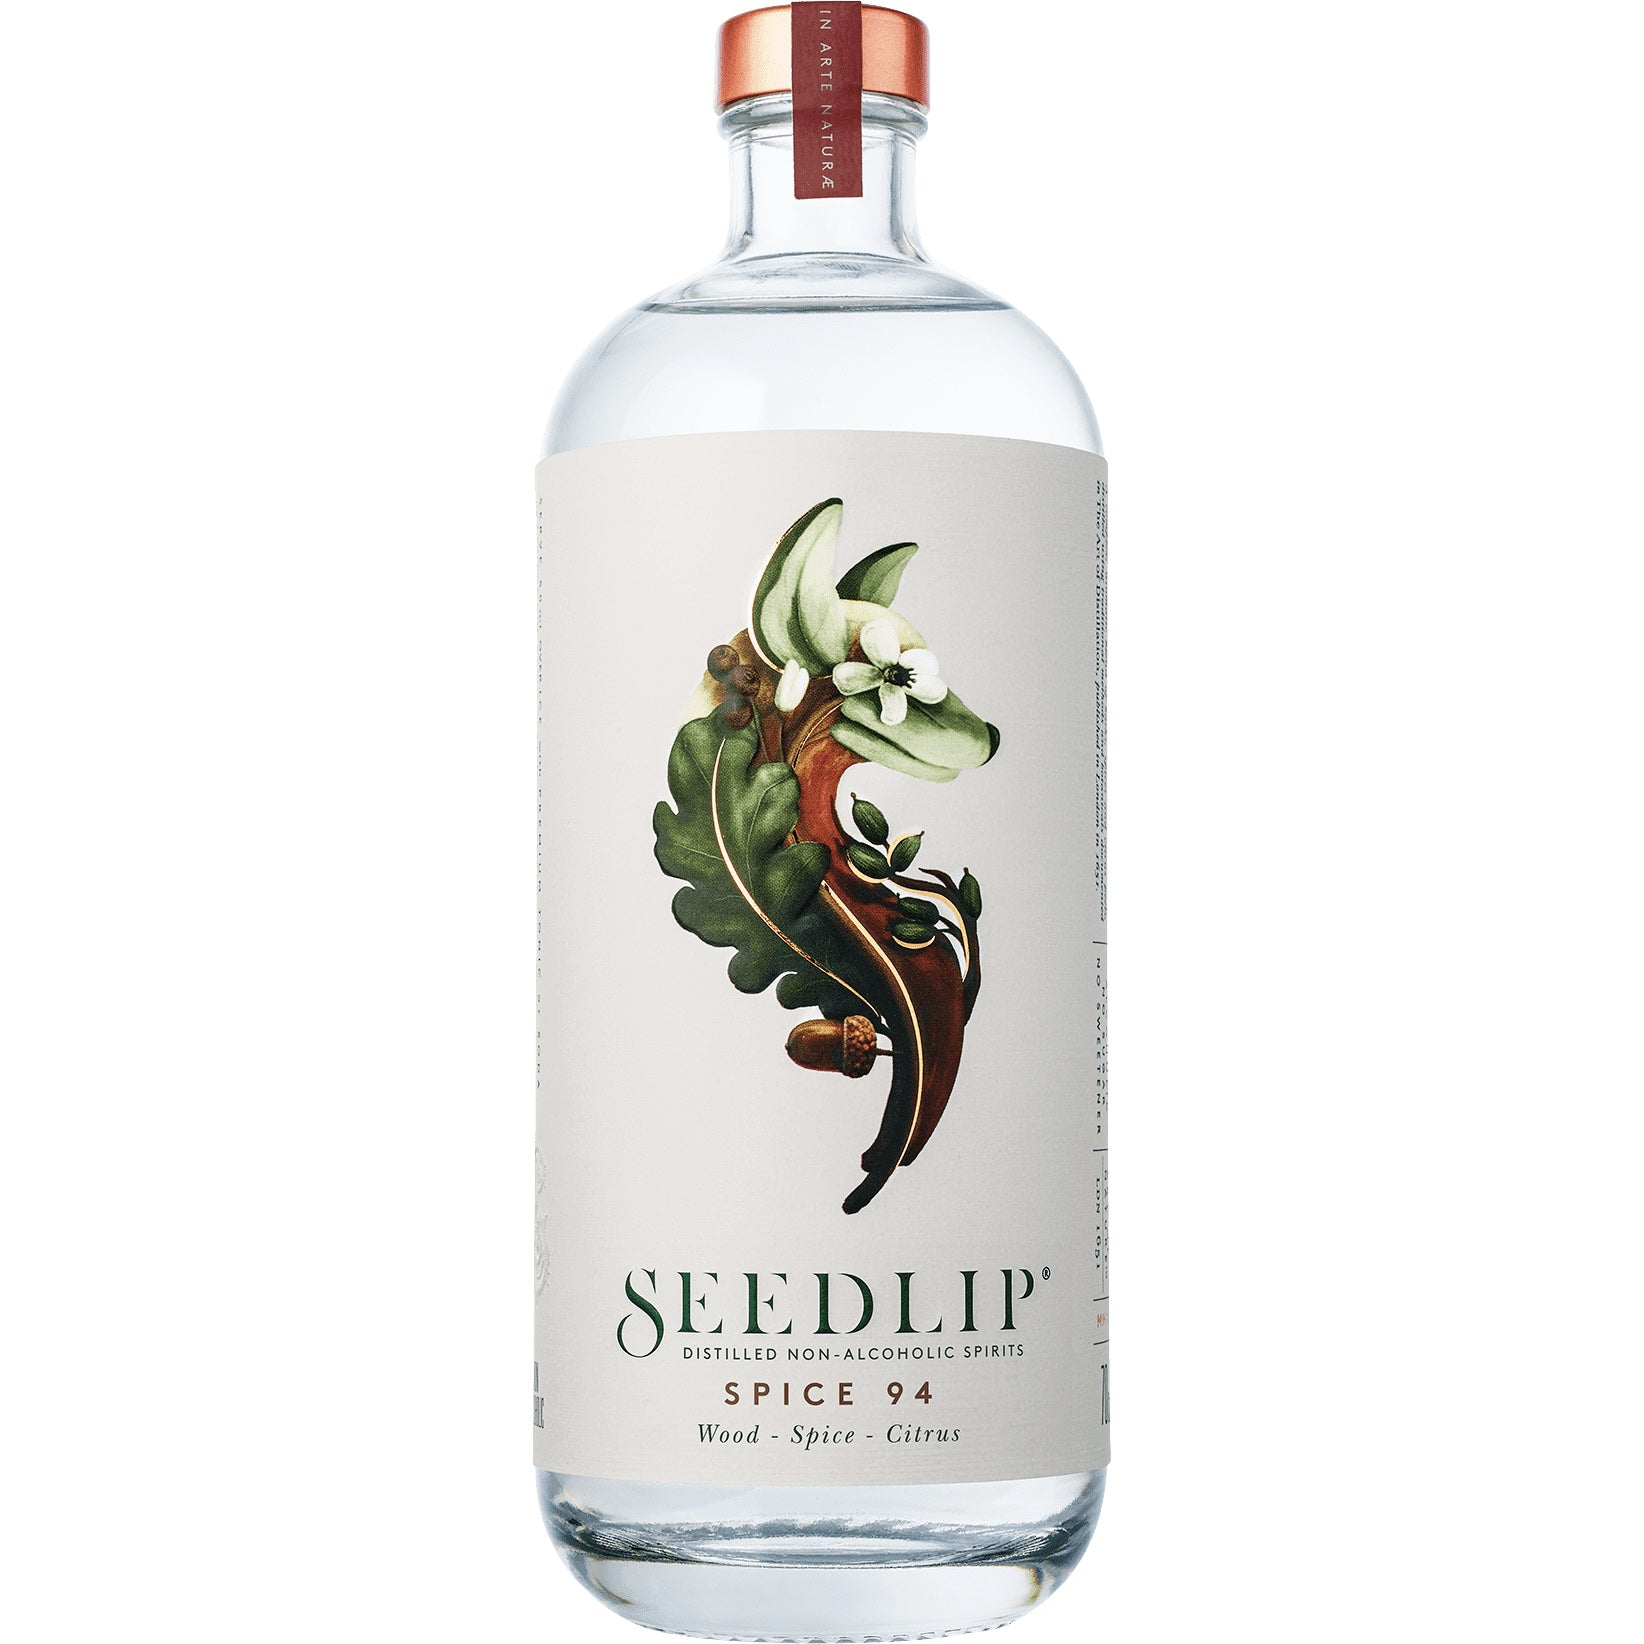 Seedlip Spice Distilled Non-Alcoholic Spirit